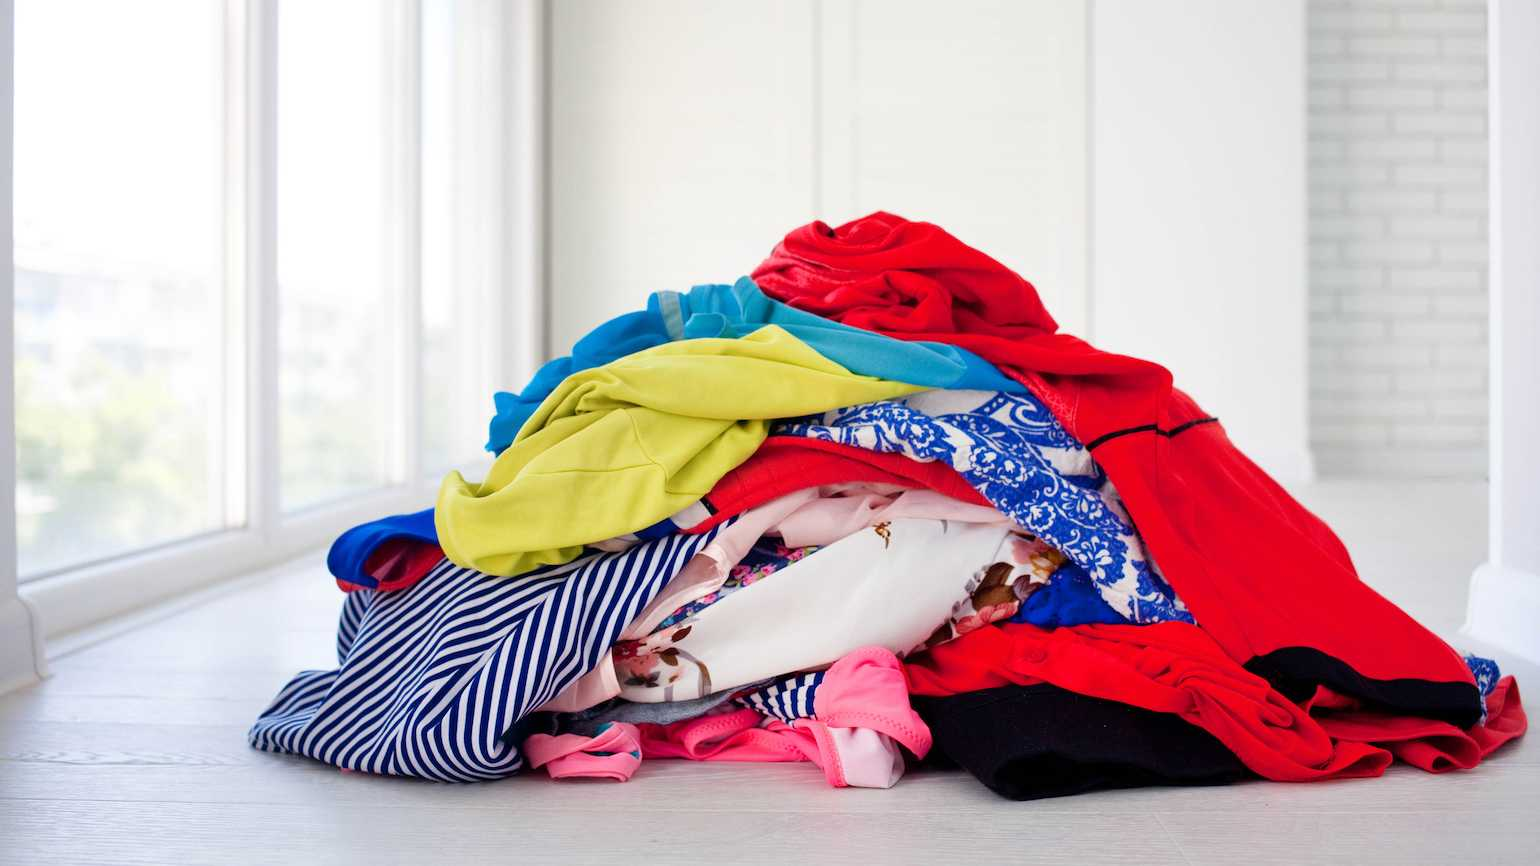 How to finish a decluttering project